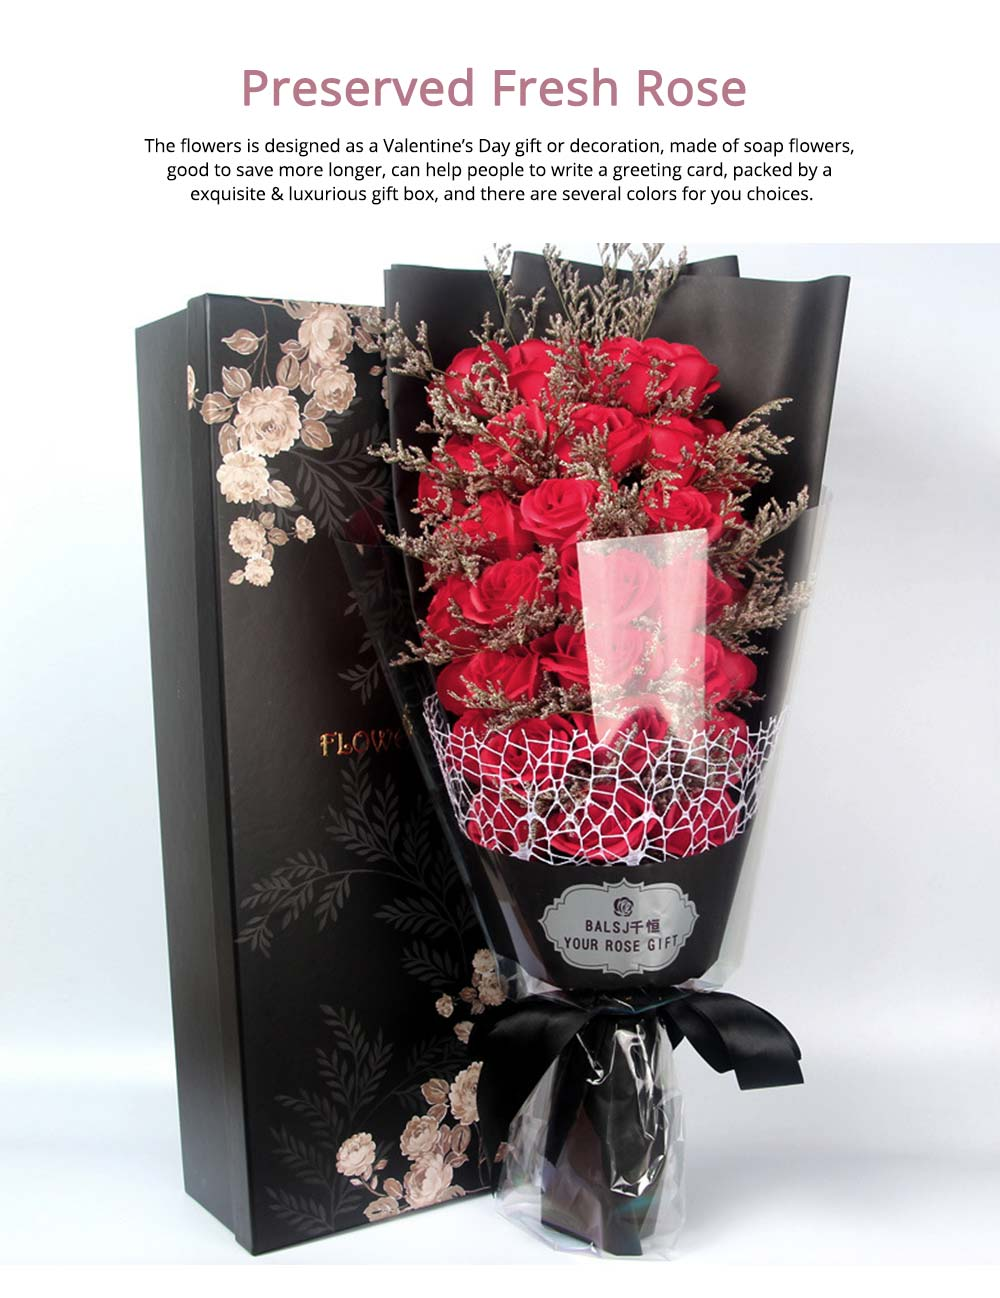 Preserved Fresh Rose with Dry Flower for Valentine's Day, Romantic Rose with Luxurious Gift Box for Girlfriend 0